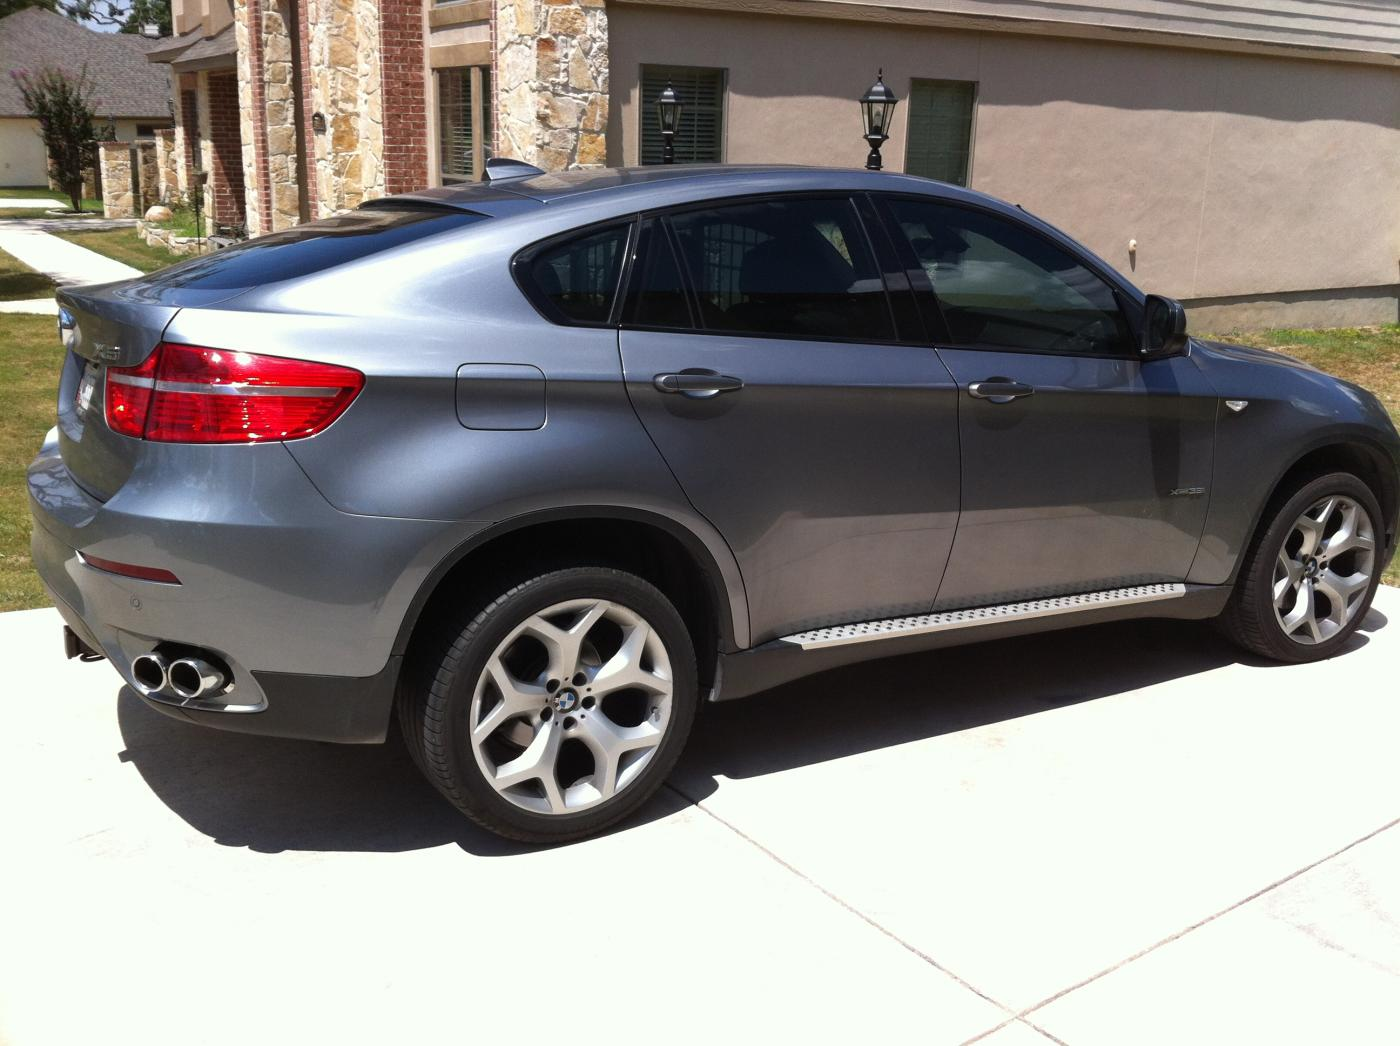 2014 Bmw X6 Gray 200 Interior And Exterior Images